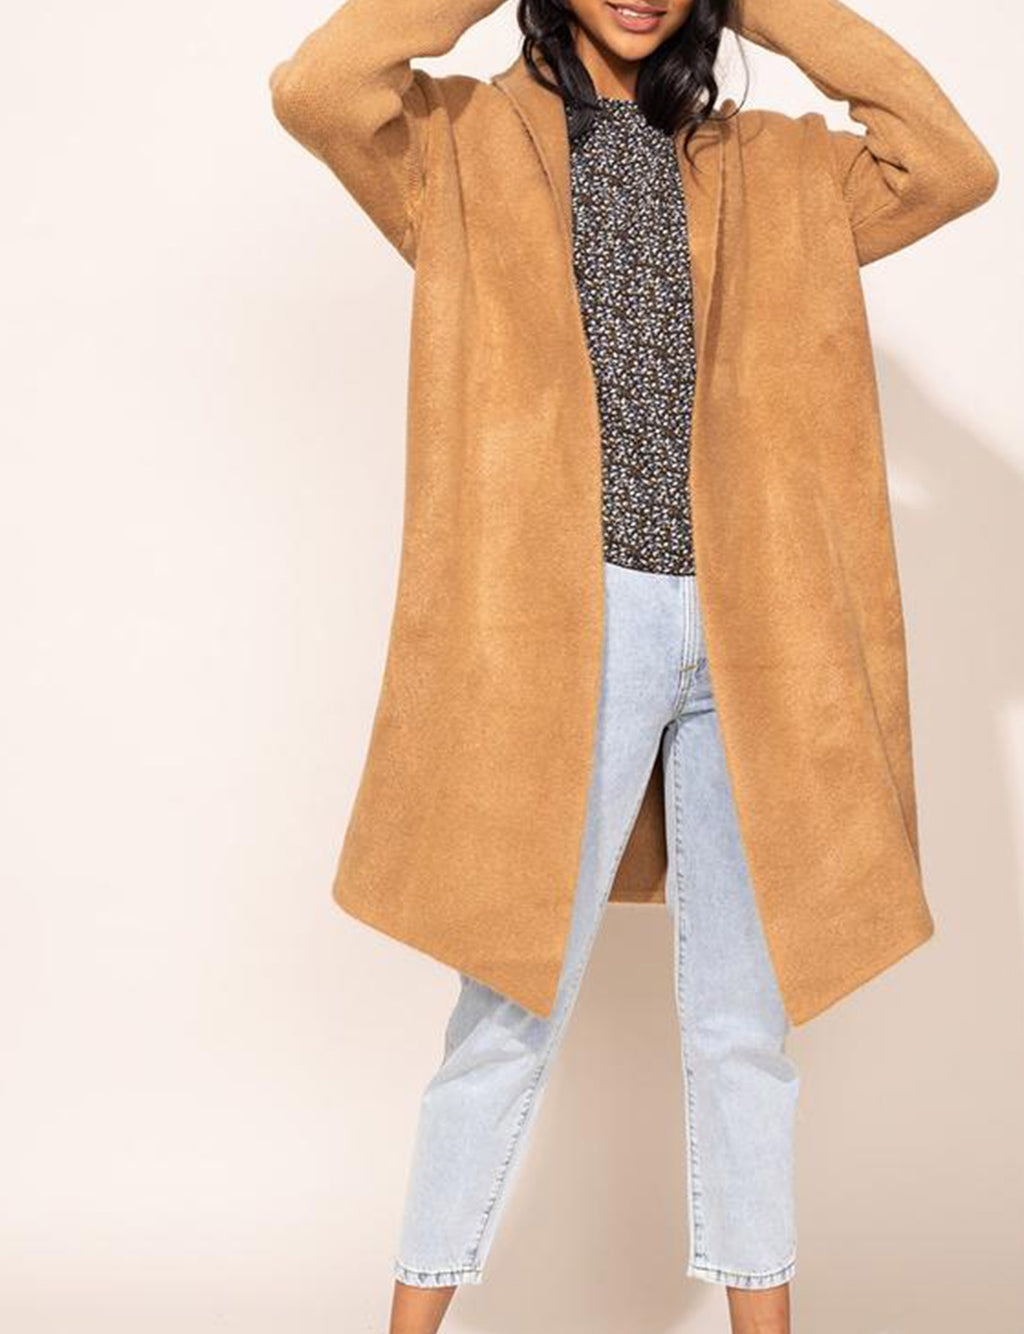 Stockport Sweater Coat in Light Brown